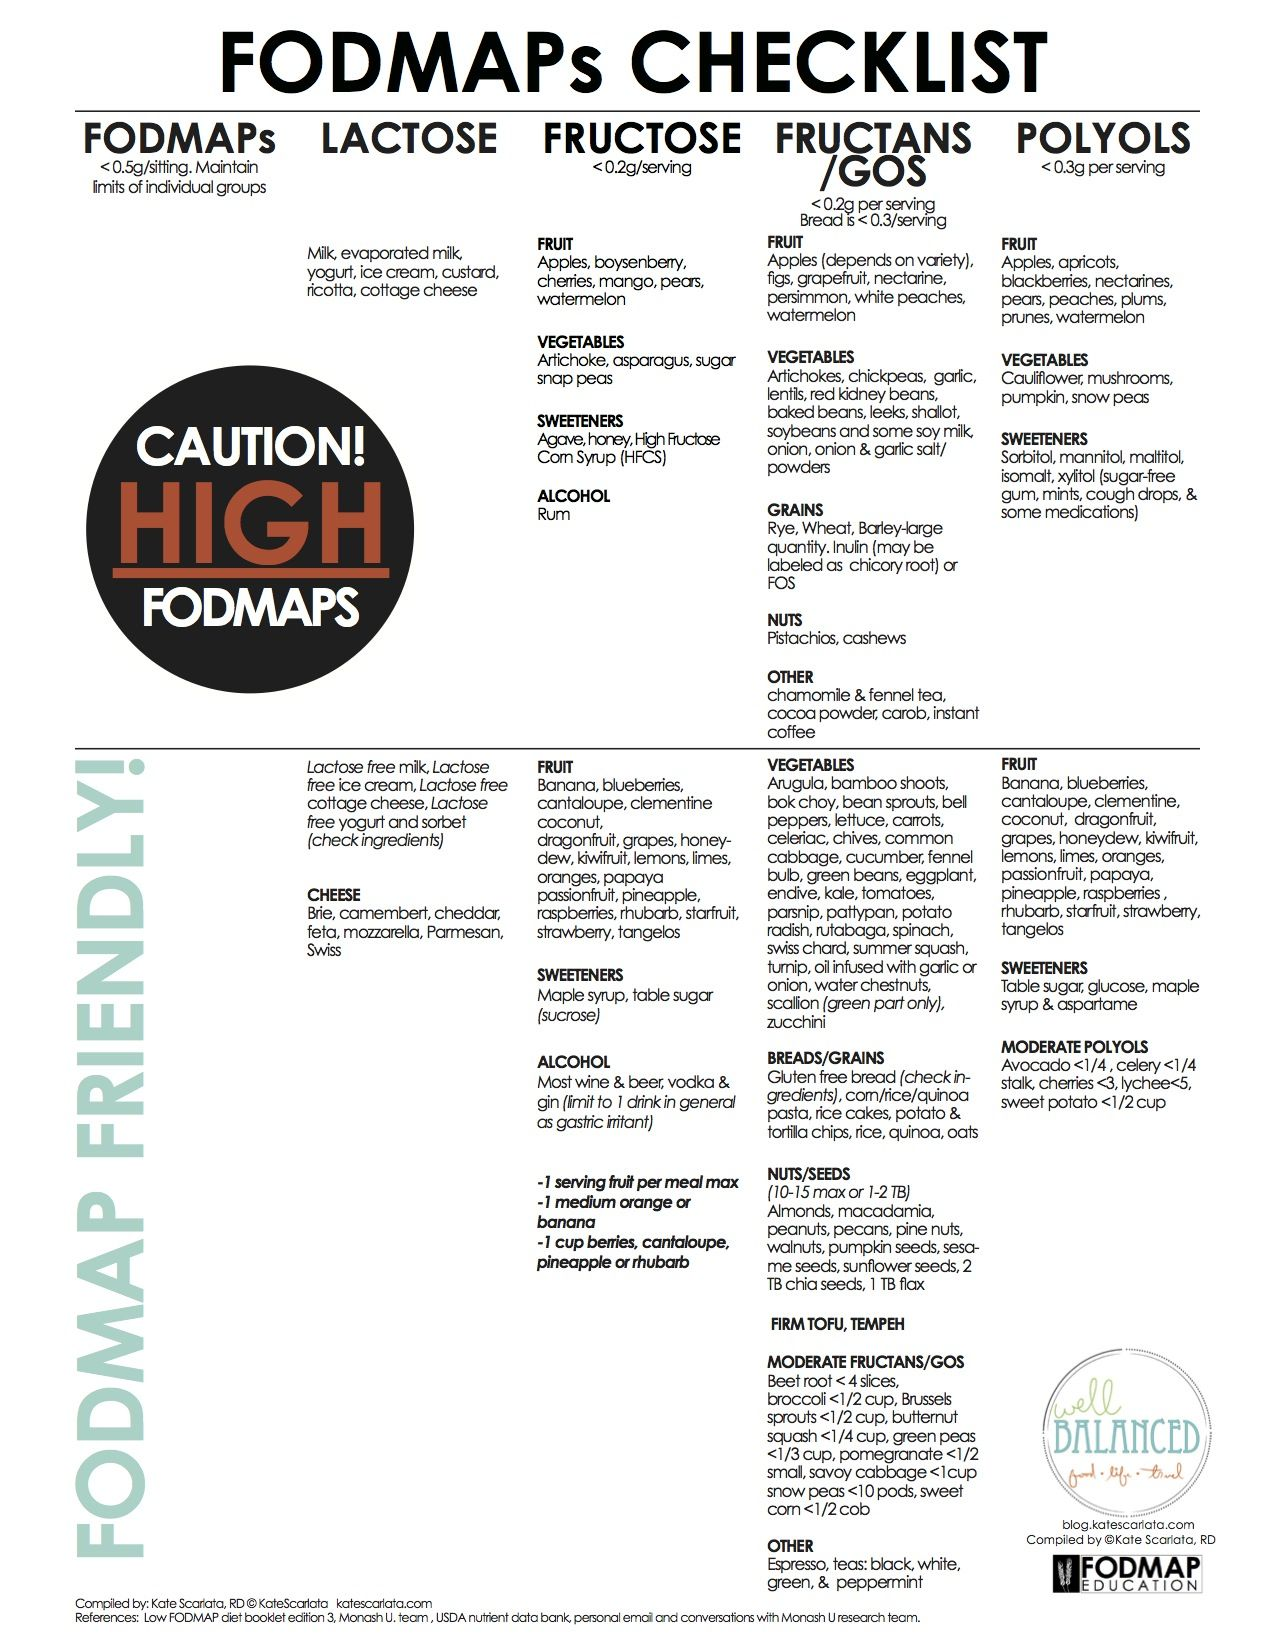 FODMAPs Basics Fodmap and Fodmap diet